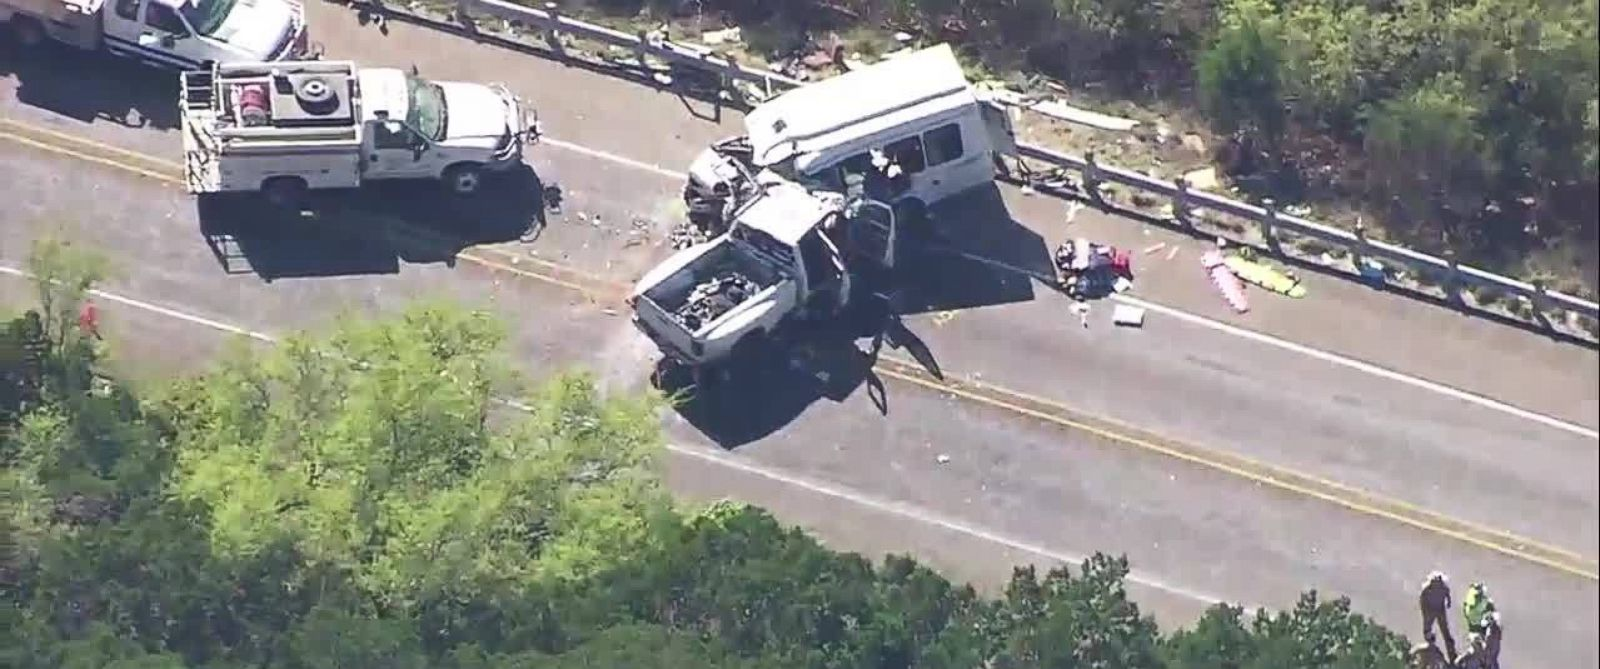 Church bus crash in Texas kills at least 12 dead; 3 others injured